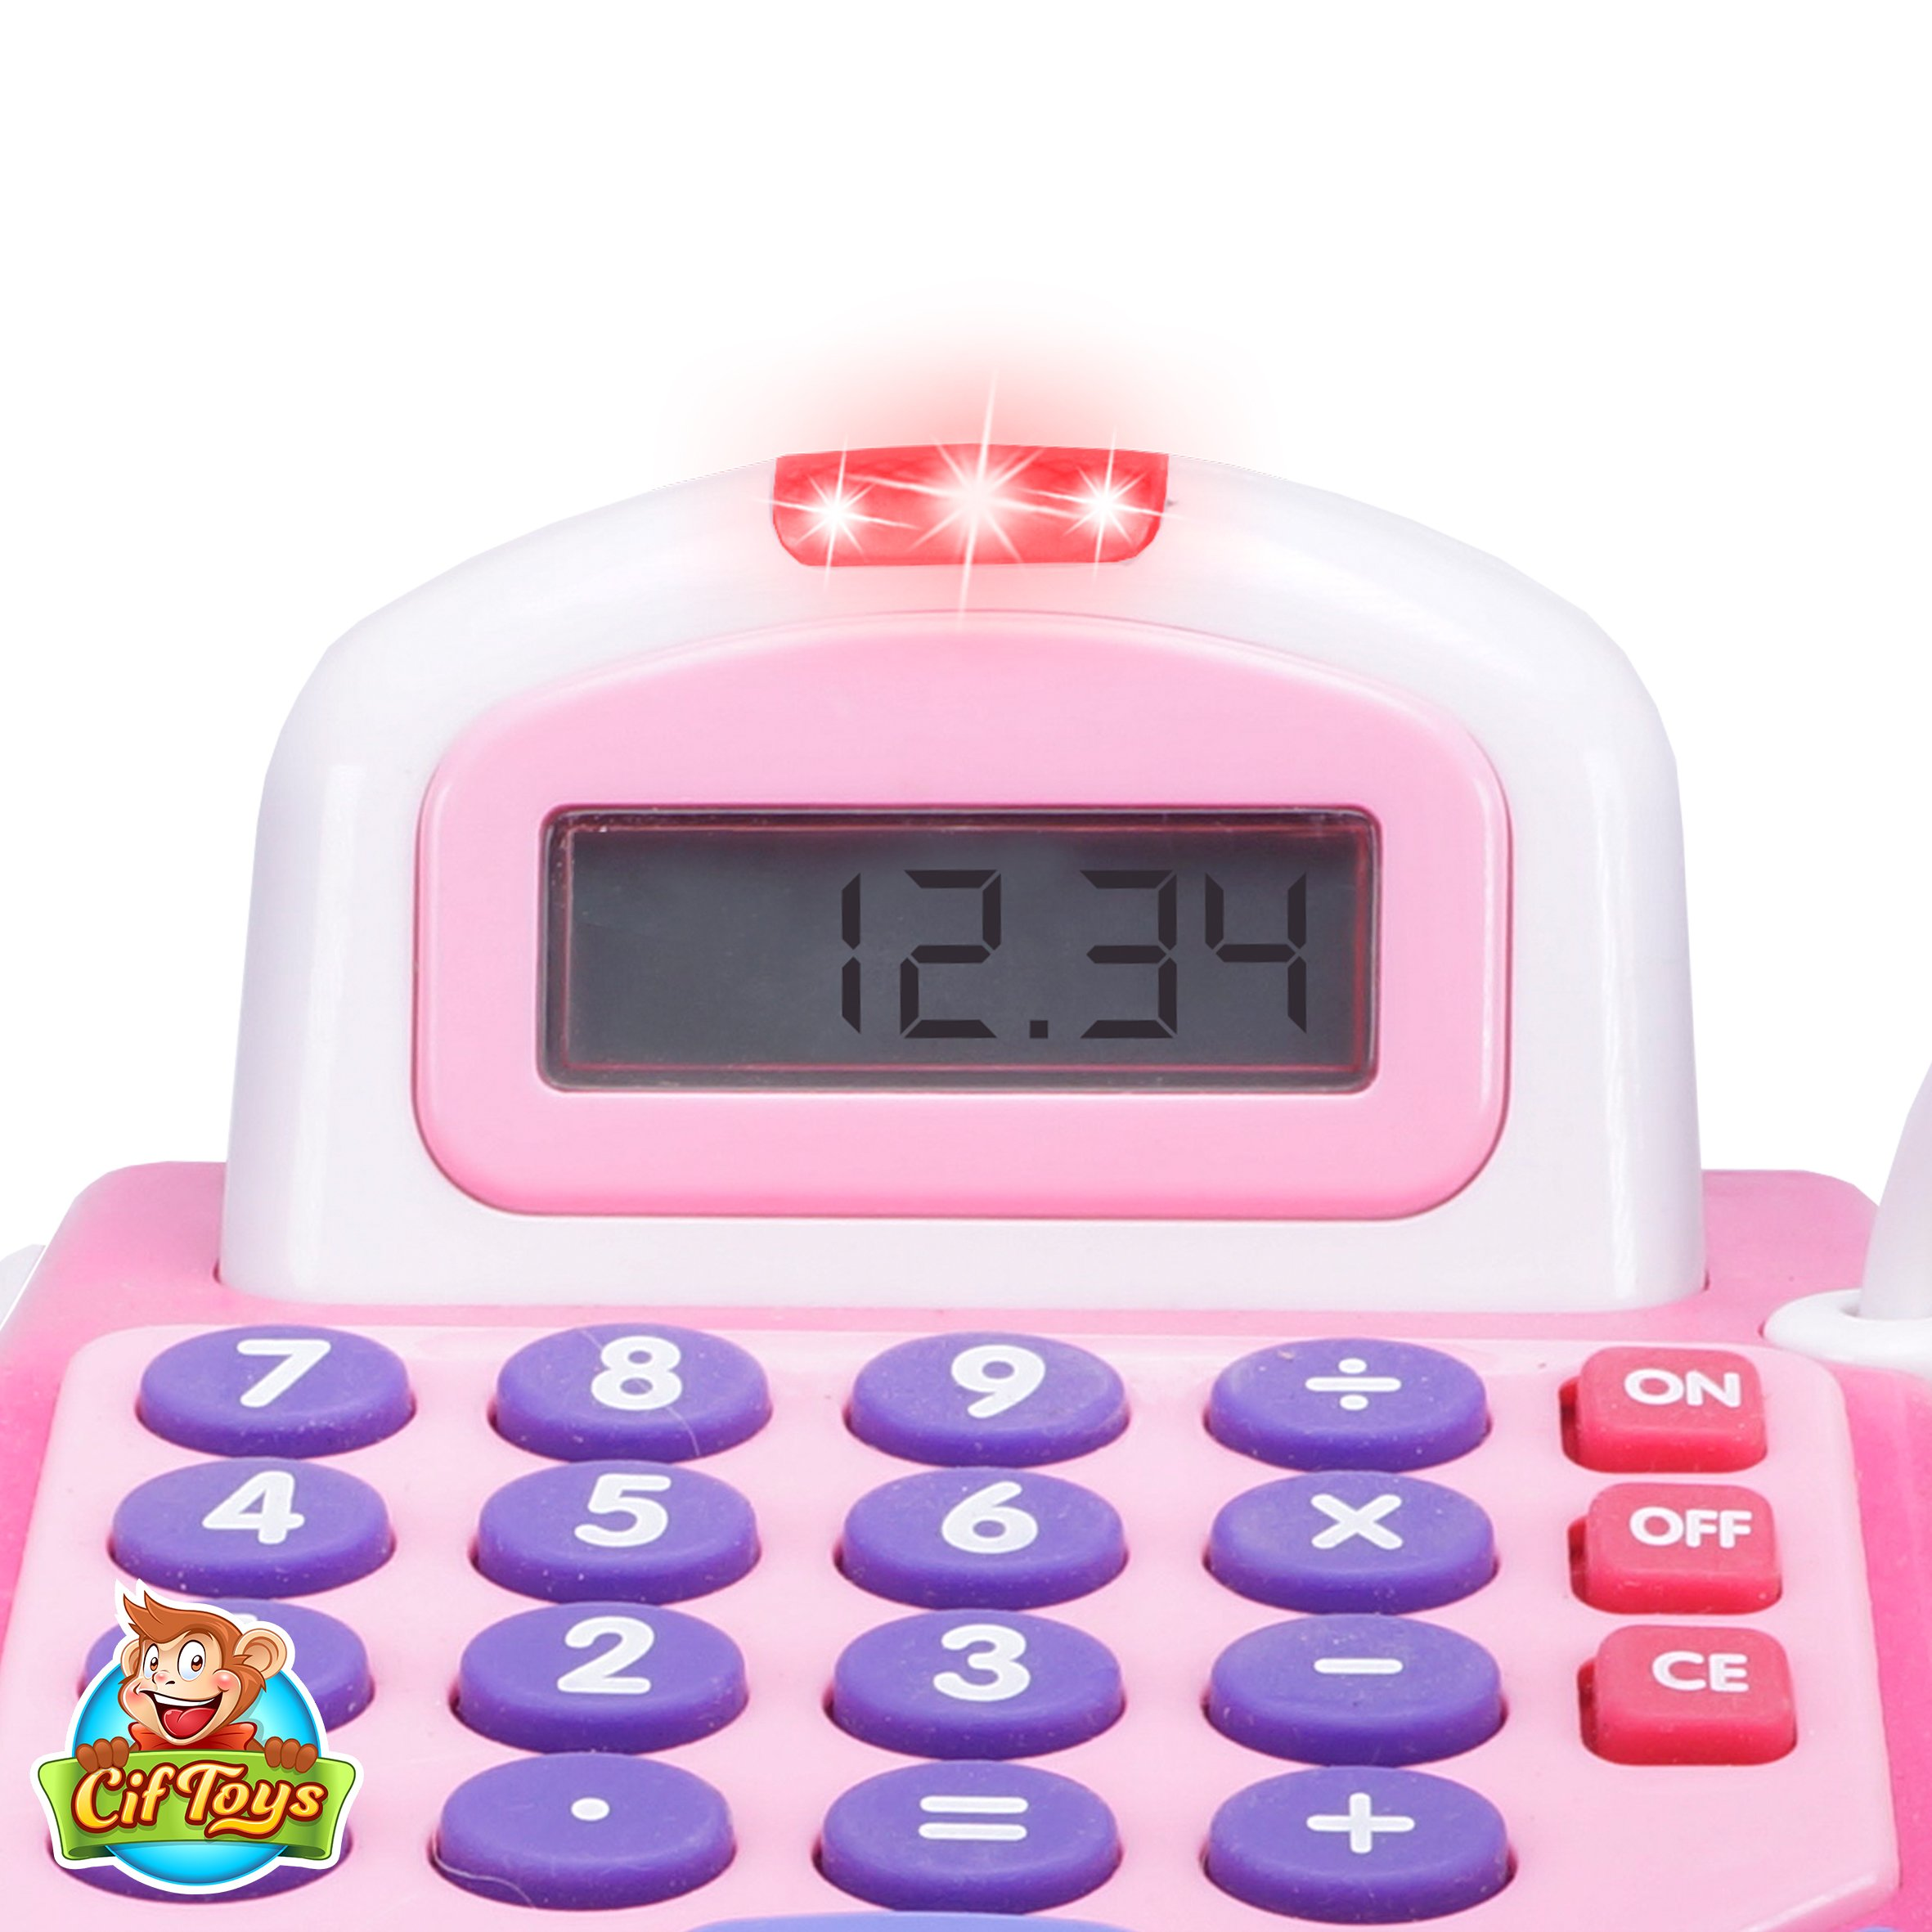 CifToys Cashier Toy Cash Register Playset | Pretend Play Set for Kids | Colorful Children's Supermarket Checkout Toy with Microphone & Sounds | Ideal Gift for Toddlers & Pre-Schoolers by CifToys (Image #6)